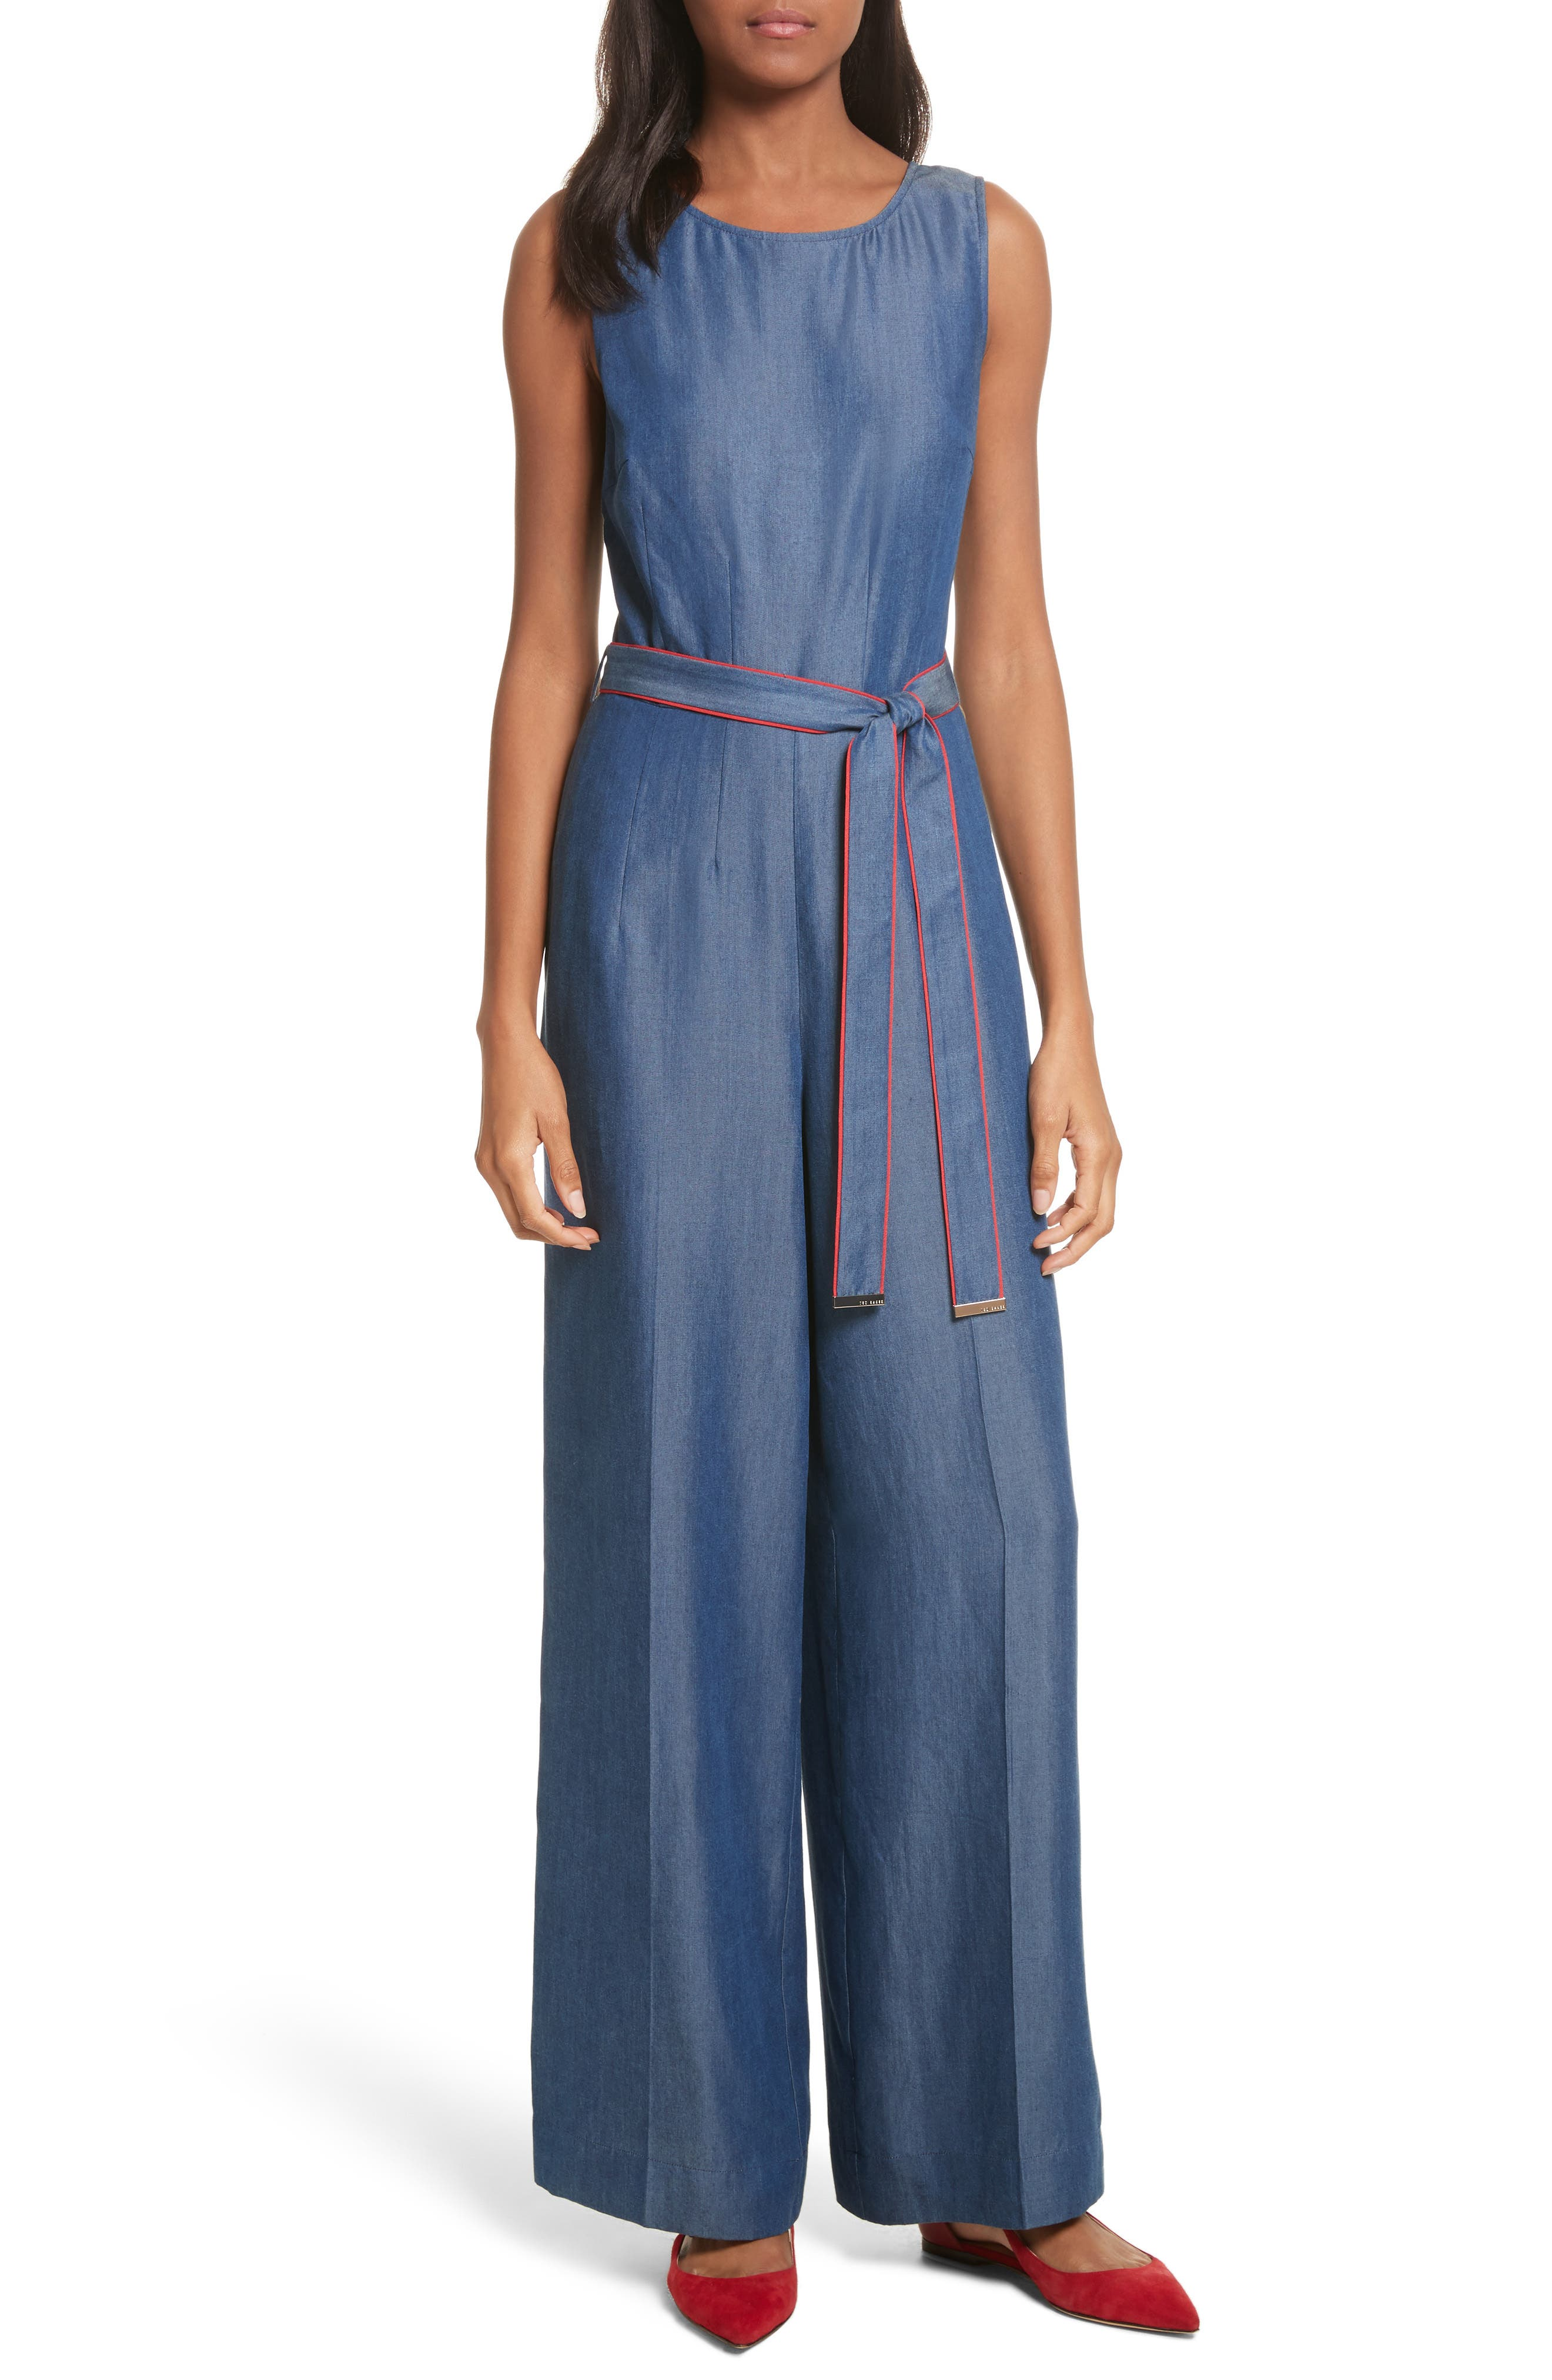 Ishbell Tencel<sup>®</sup> Jumpsuit,                             Main thumbnail 1, color,                             431